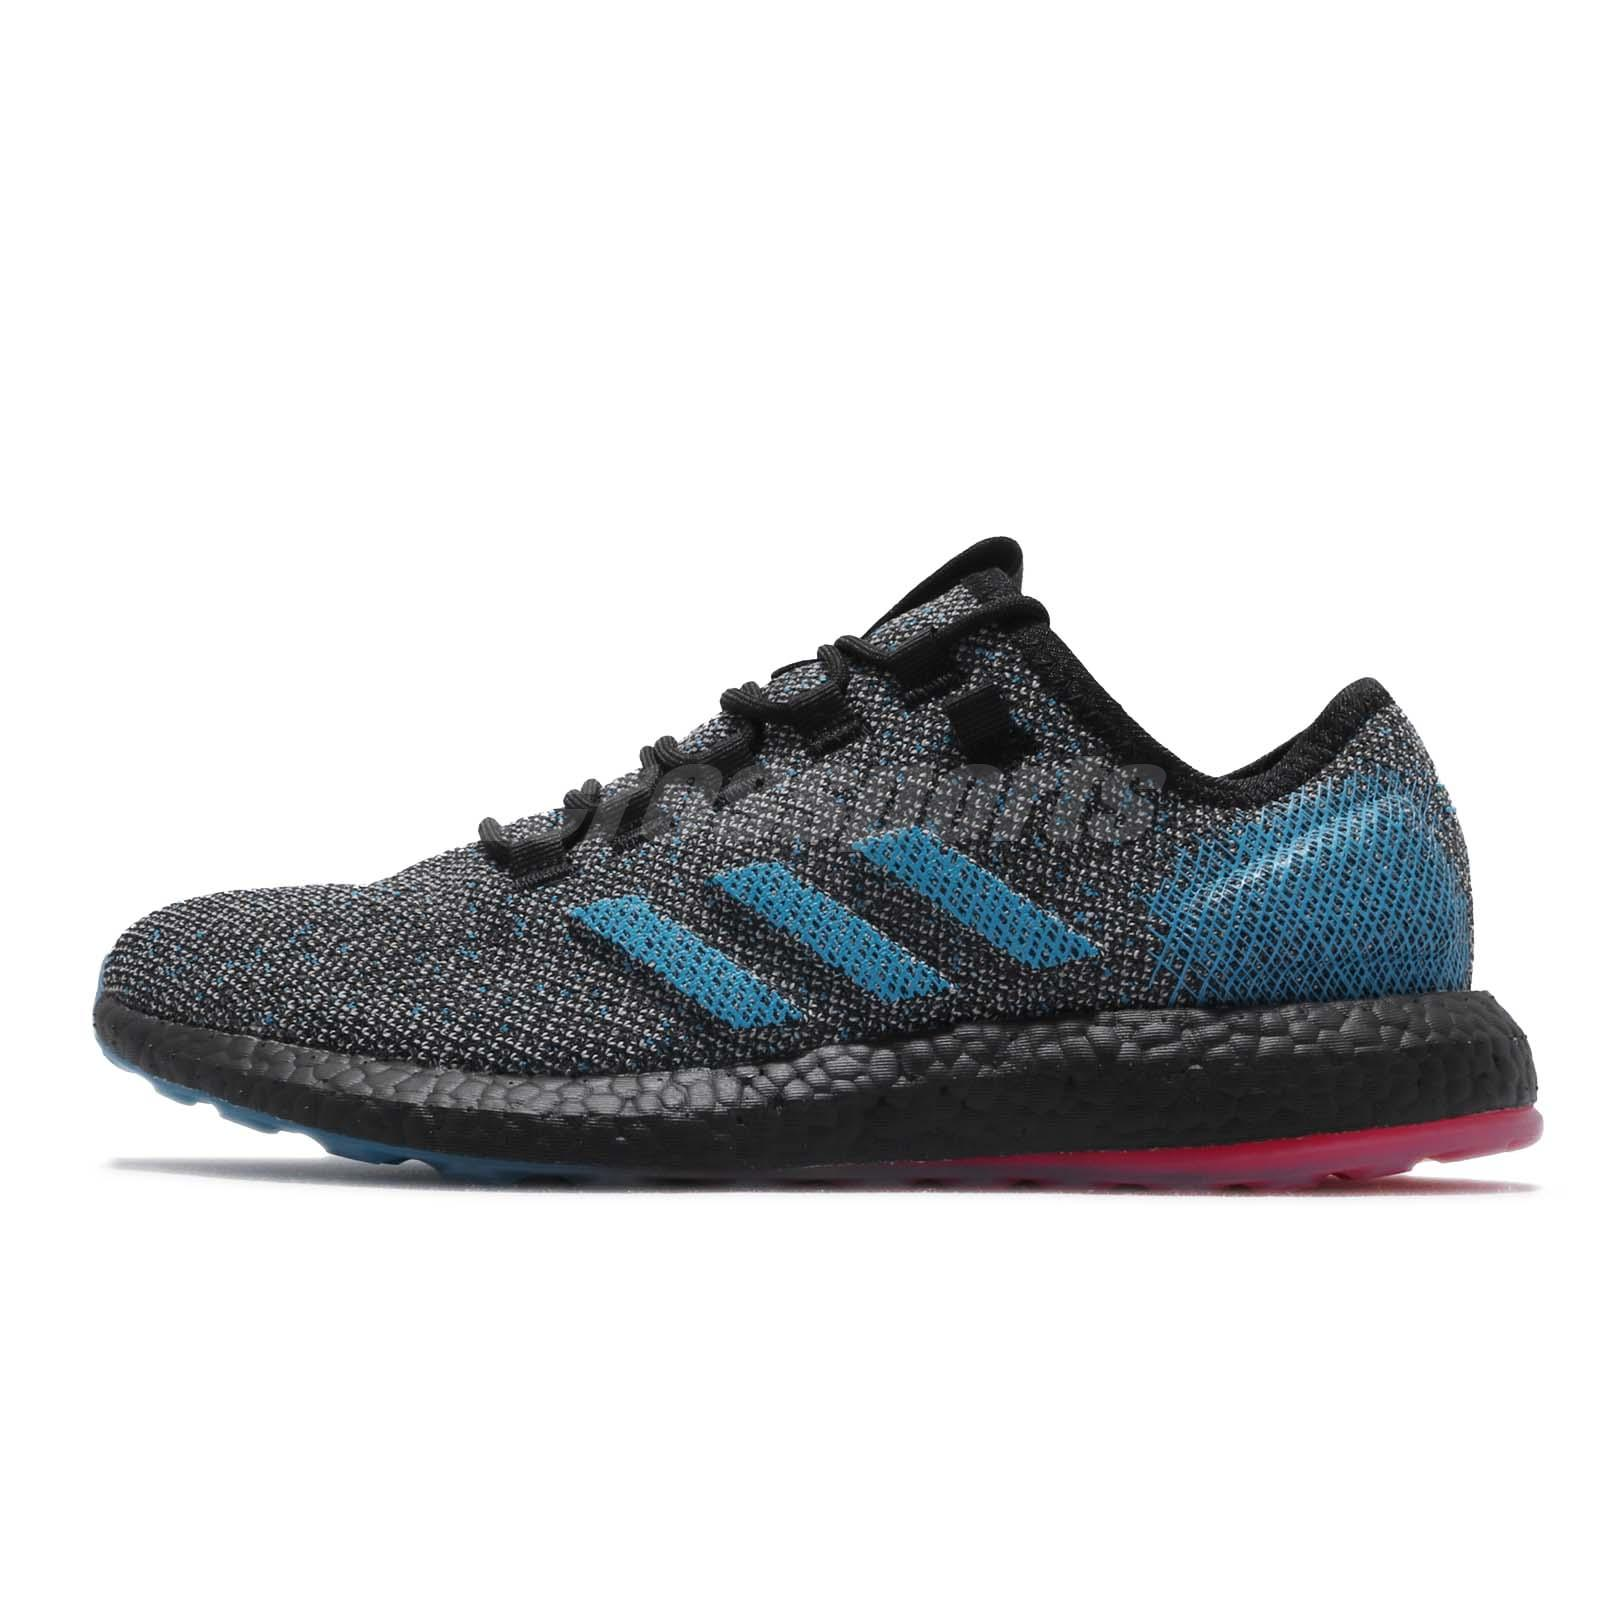 888c90e61bff4 adidas PureBOOST LTD Black Blue Reflective BOOST Mens Running Shoes B37811